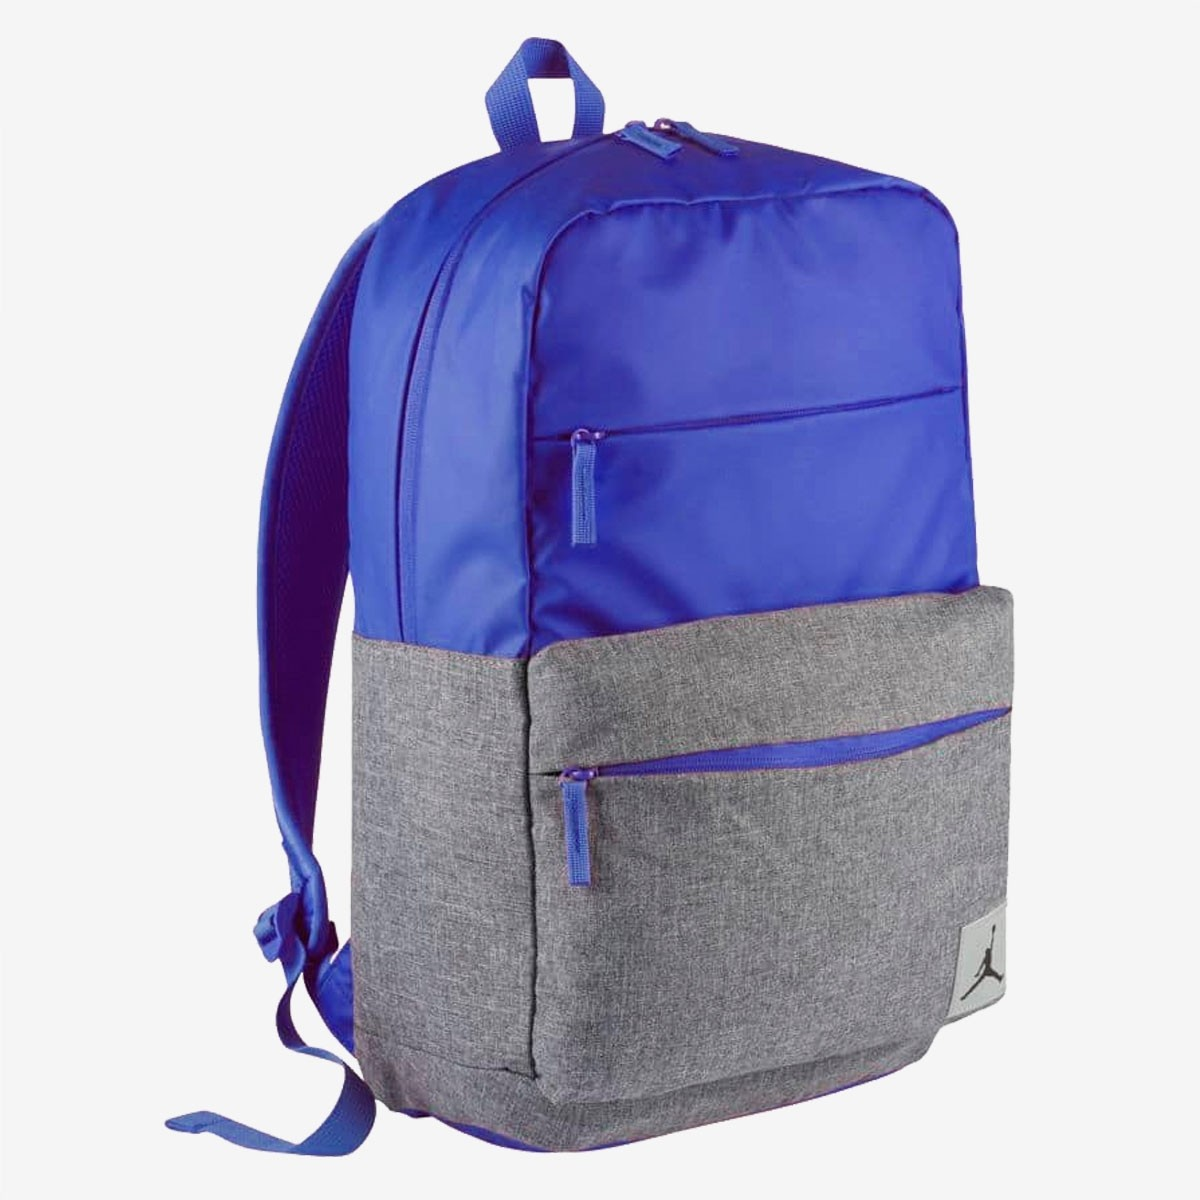 Jordan Pivot Backpack 'Blue'